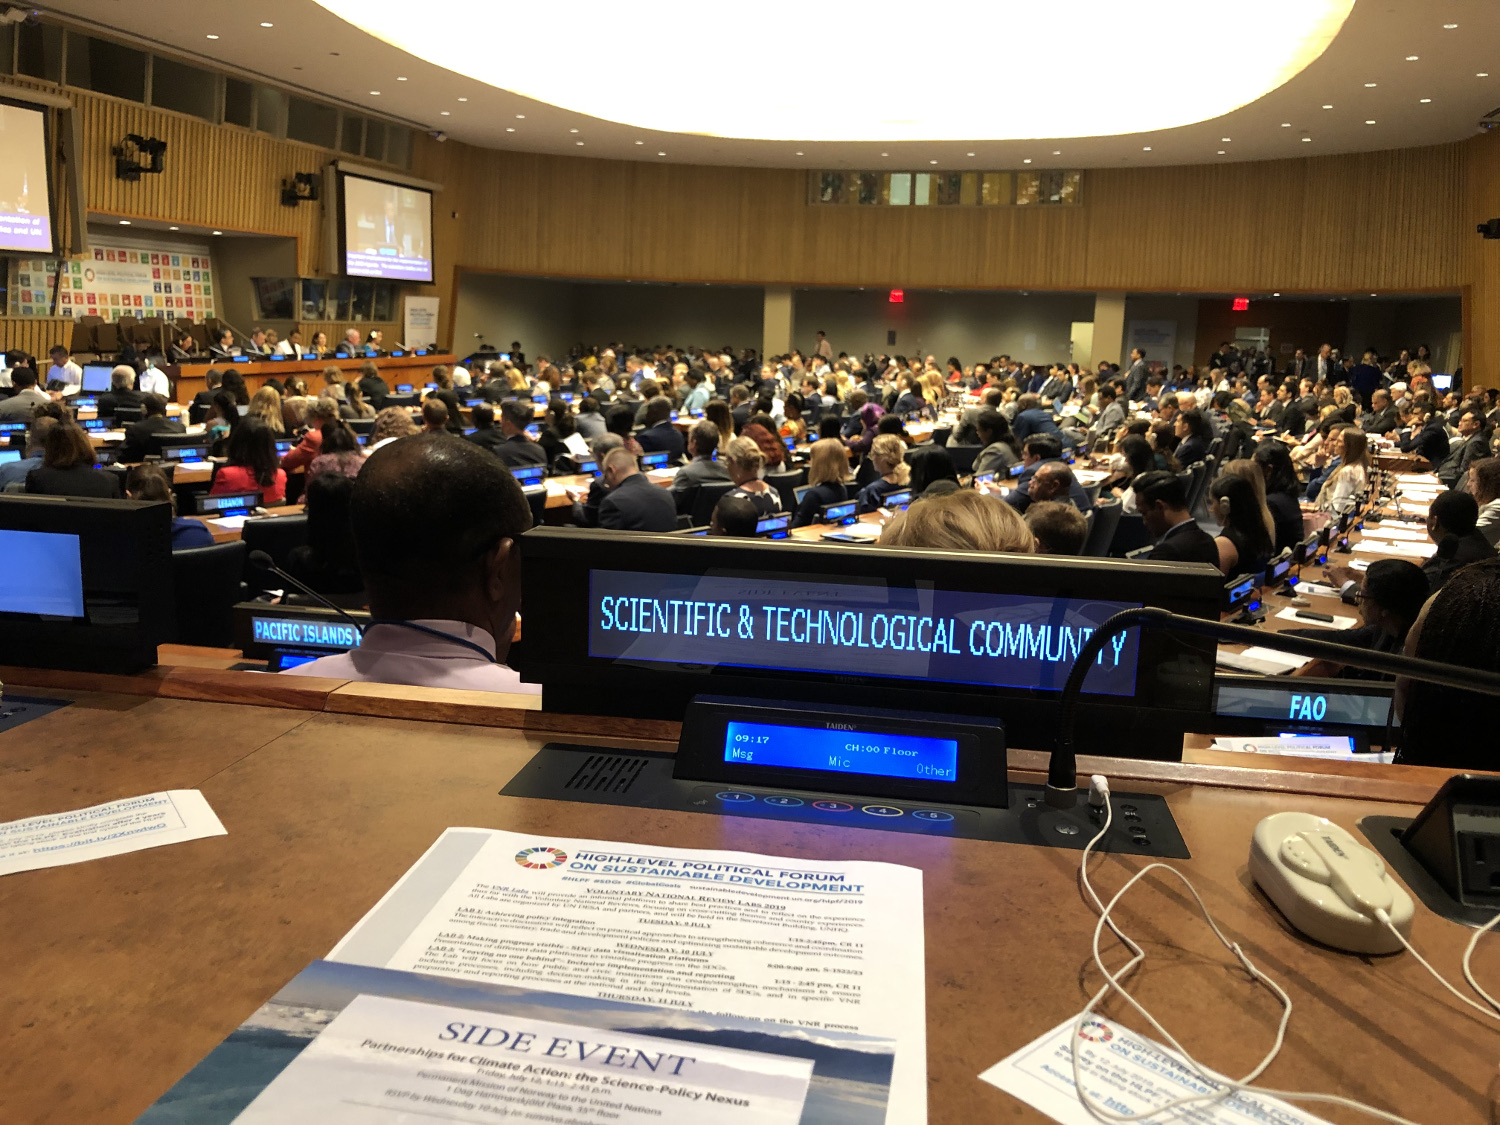 Opening of the HLPF2019